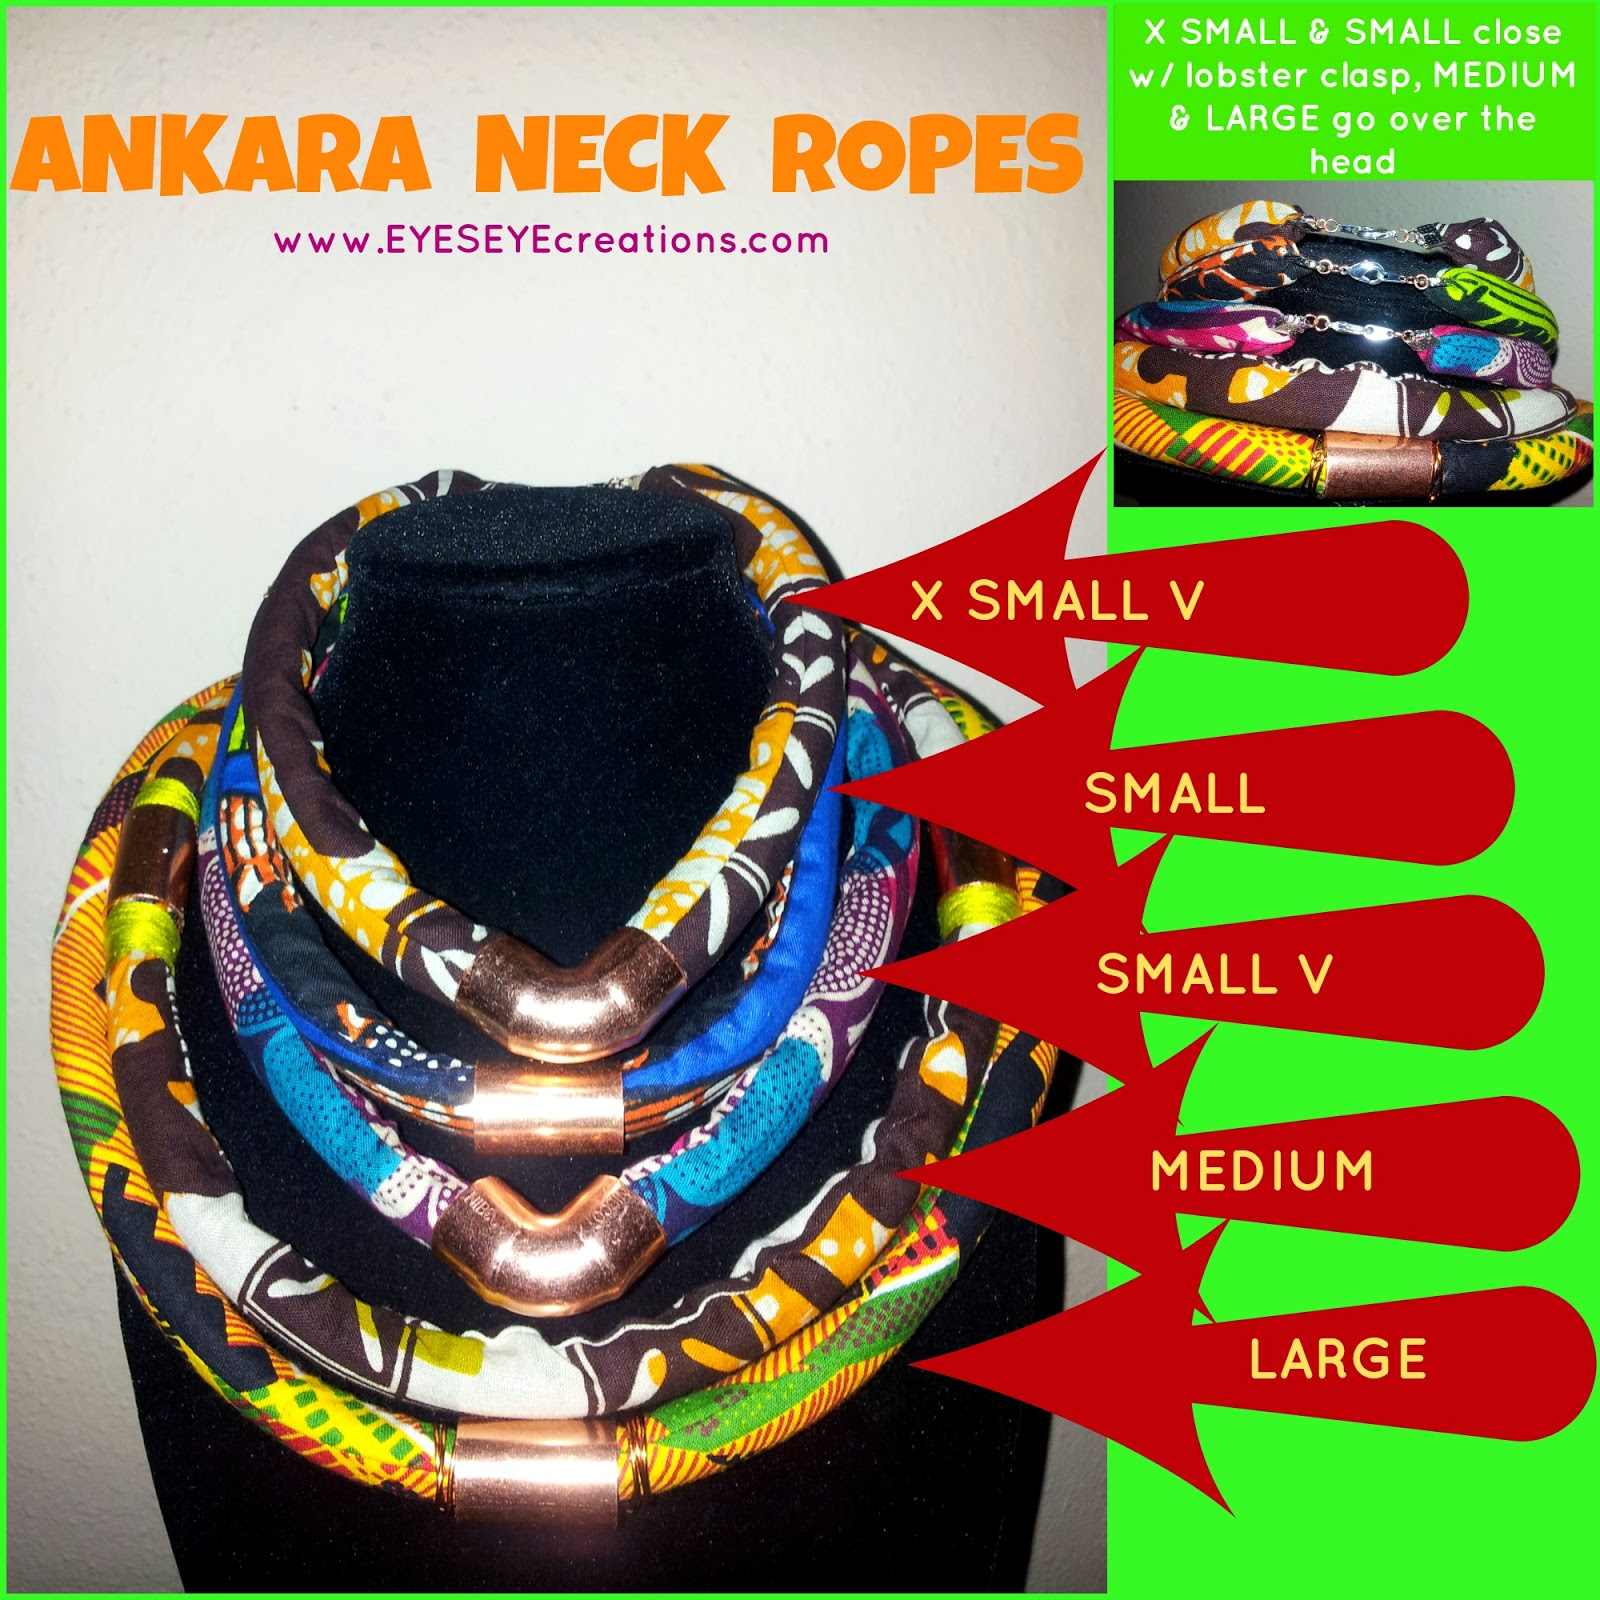 https://www.etsy.com/shop/EYESEYEcreations/search?search_query=ankara+neck+ropes&order=date_desc&view_type=gallery&ref=shop_search